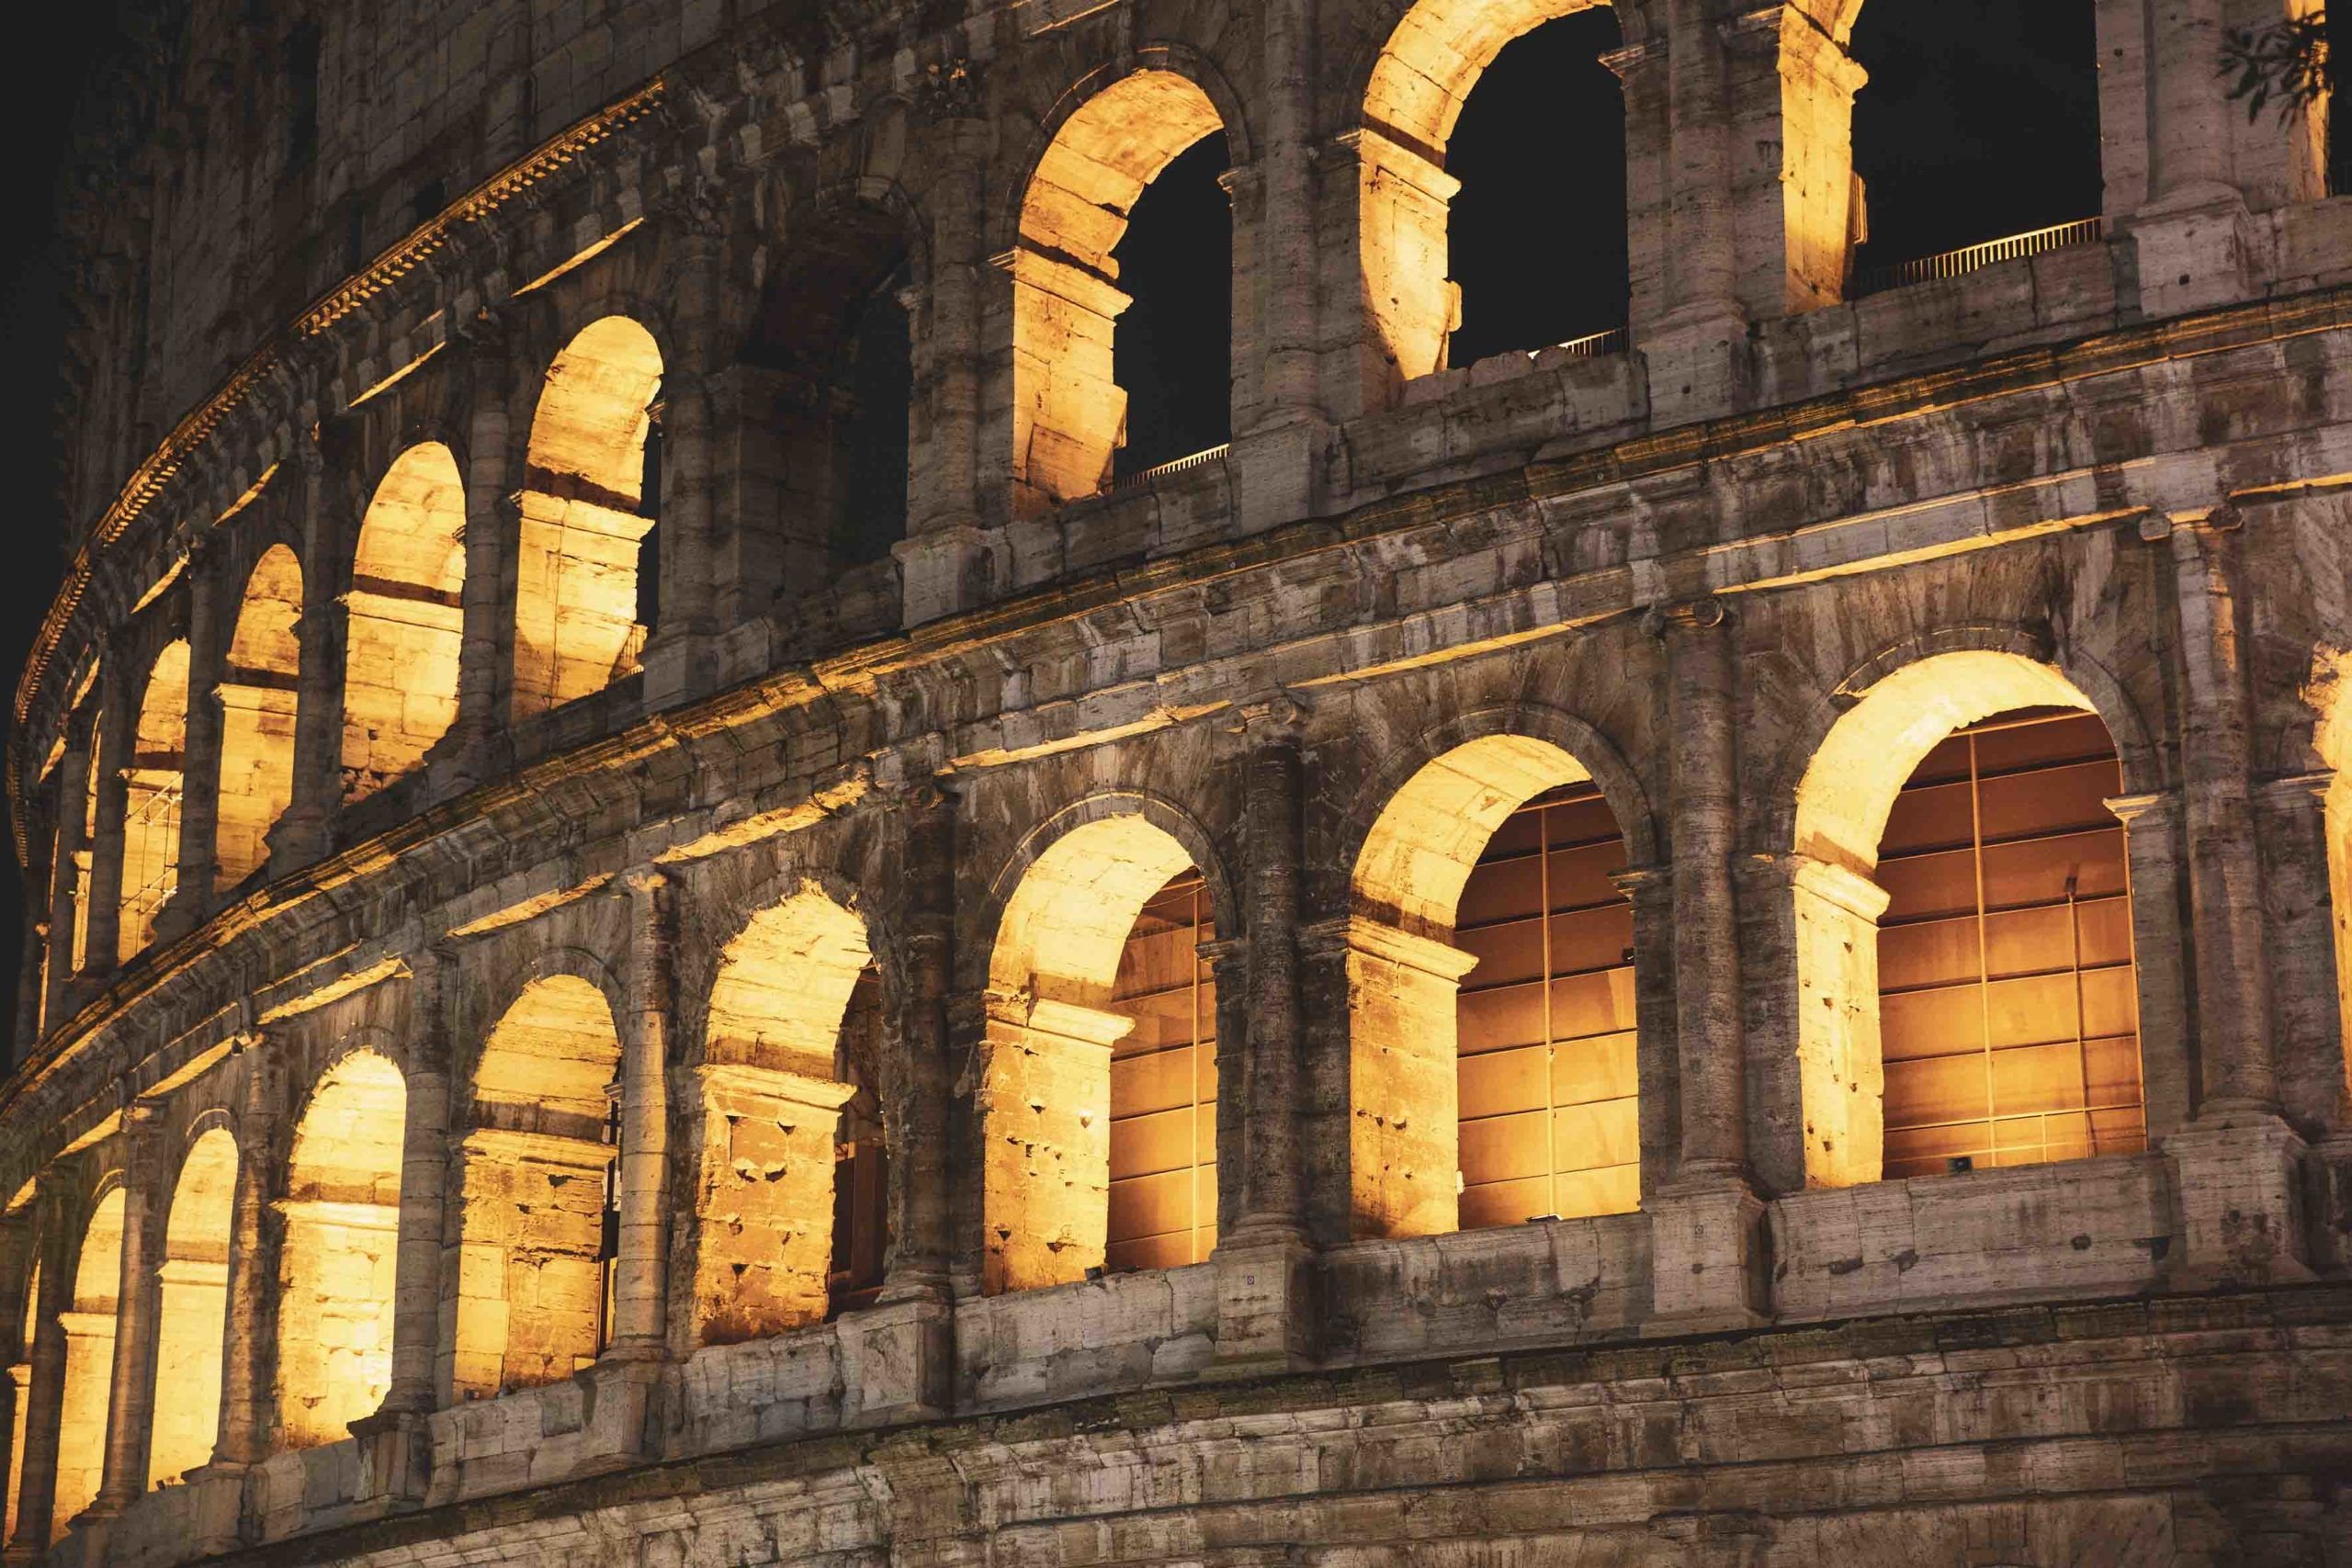 Roma, Italy, 24/11/2019: Night photo of the ancient Colosseum of Rome located in the city center, travel reports